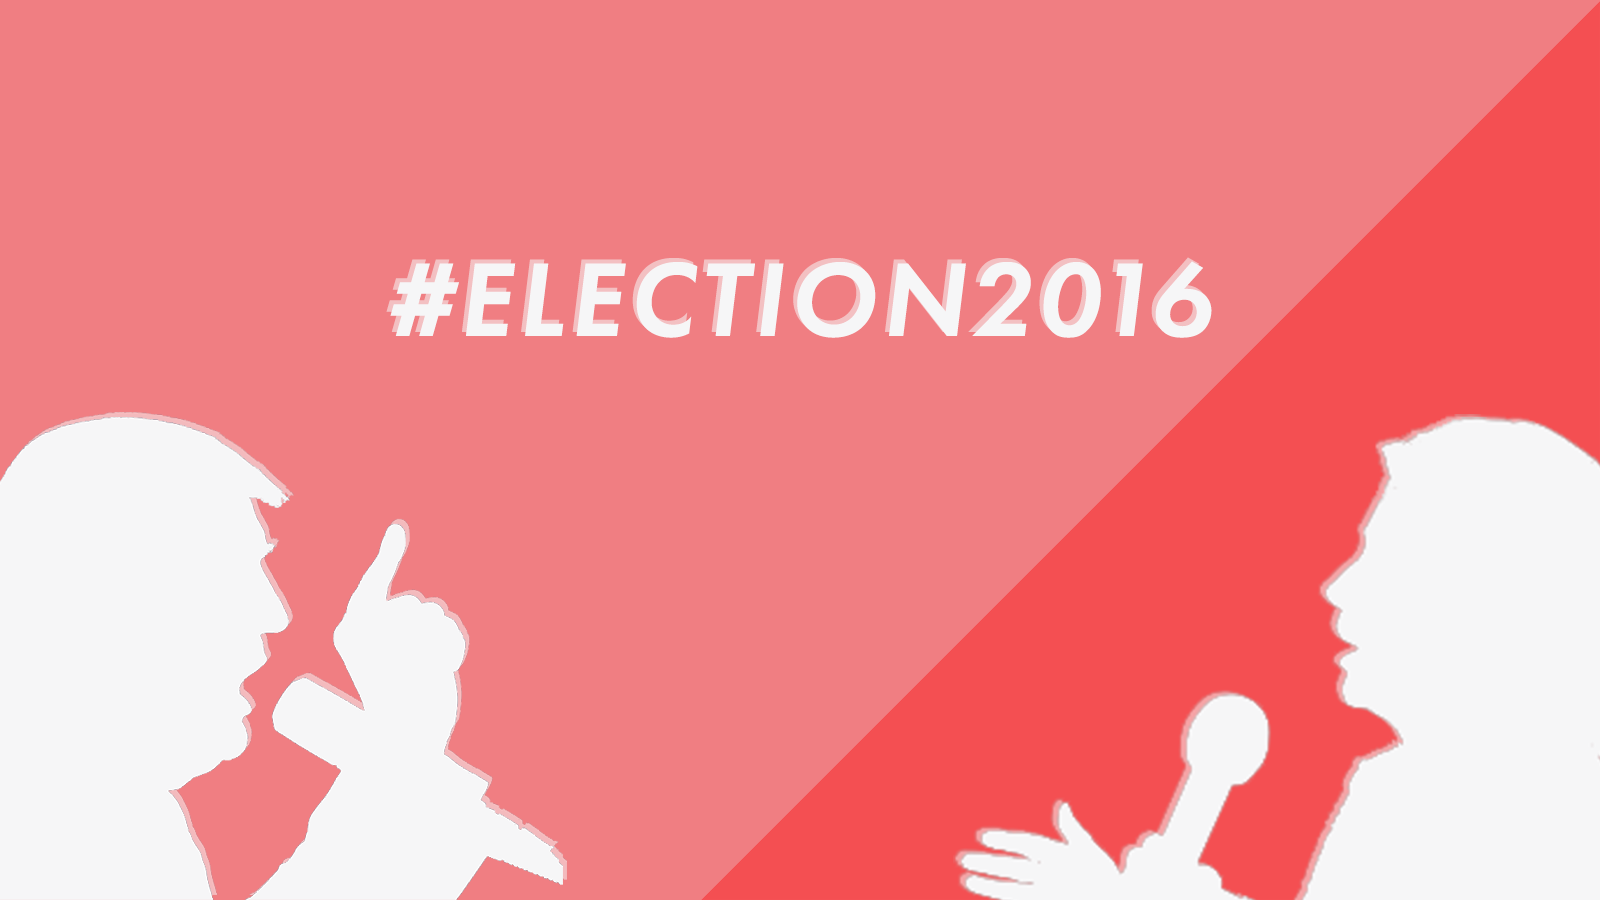 election2016.png